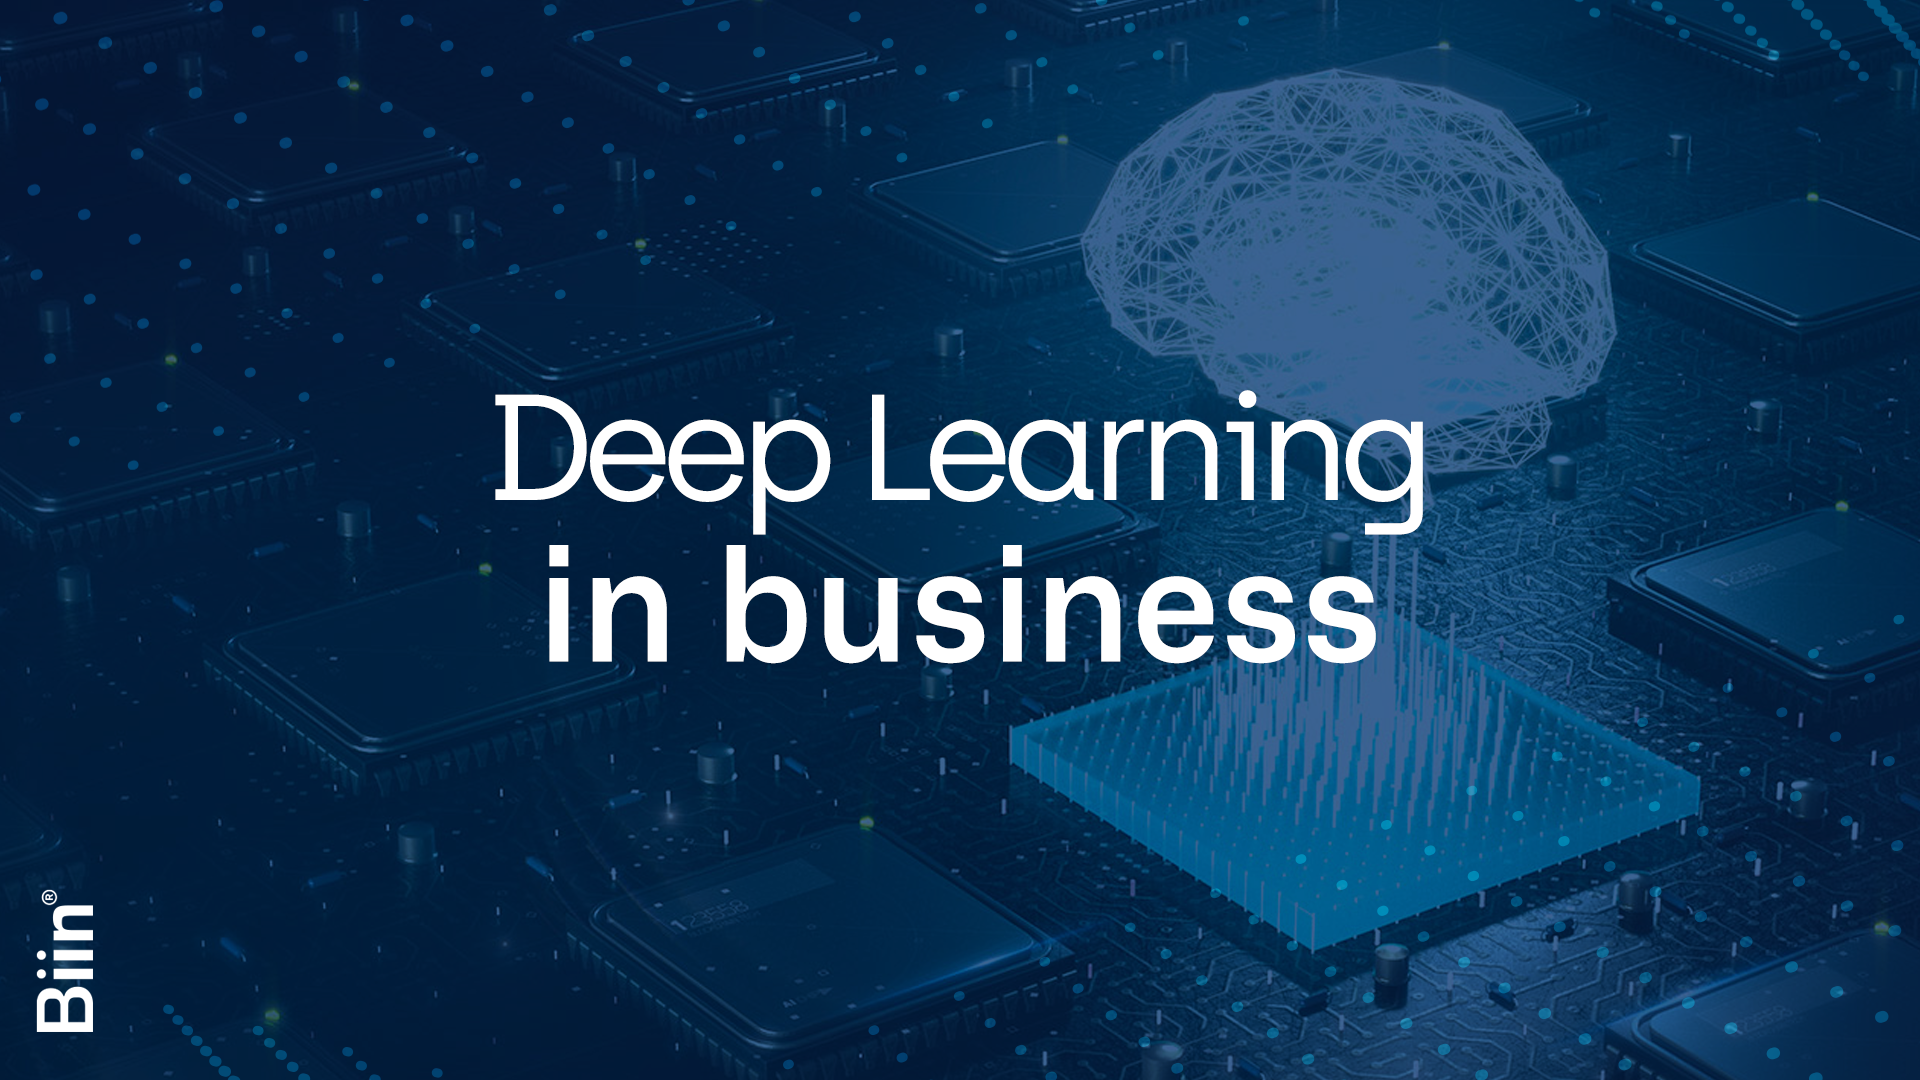 Deep Learning in business